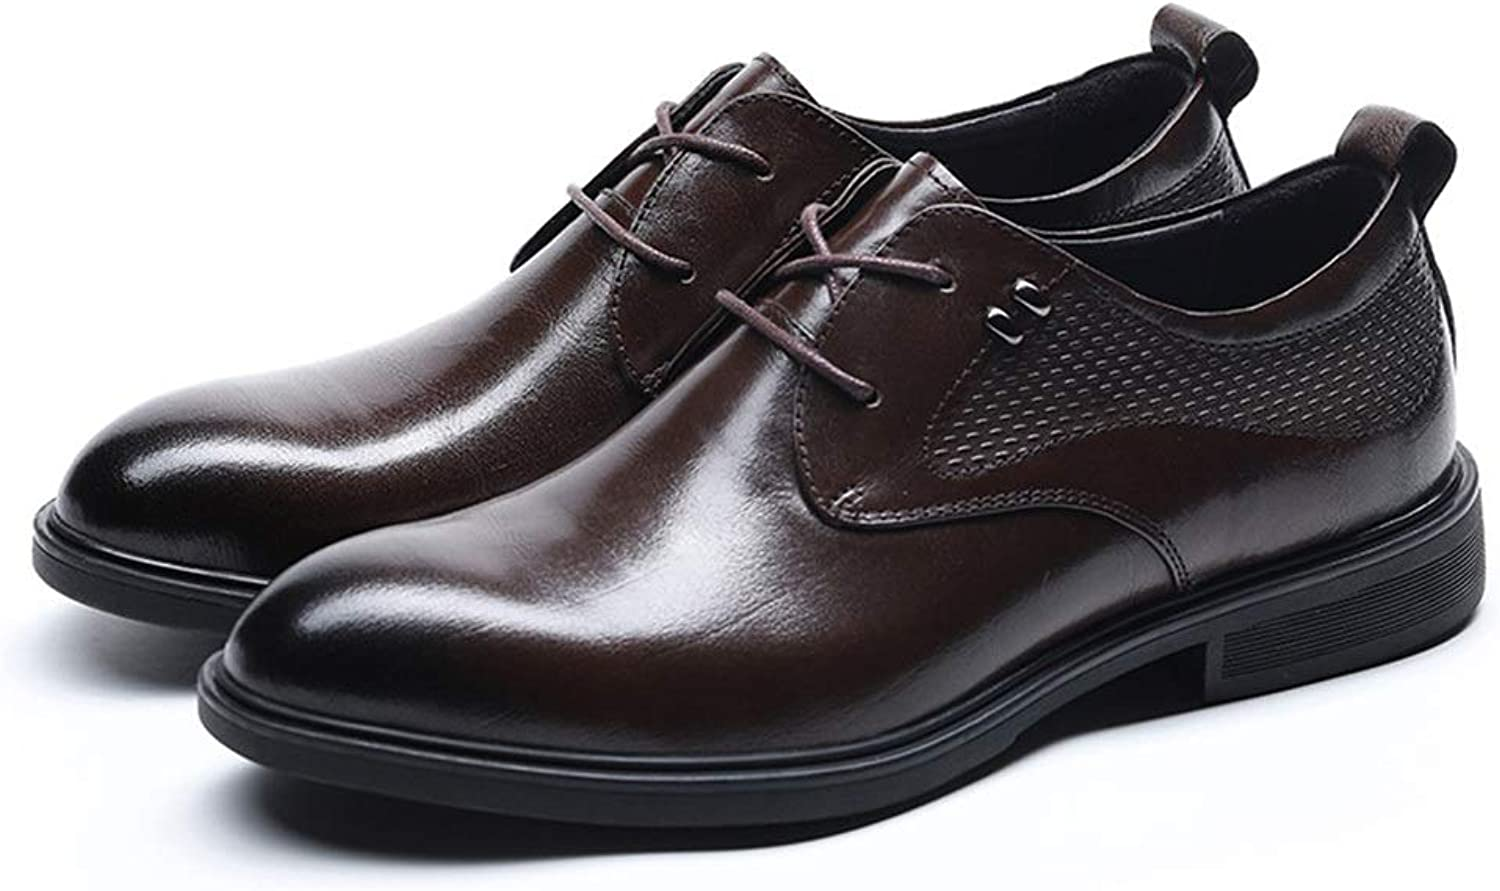 First Layer Leather Men's shoes Men's Leather shoes Retro Style Business Leather shoes (color   Coffee, Size   43)